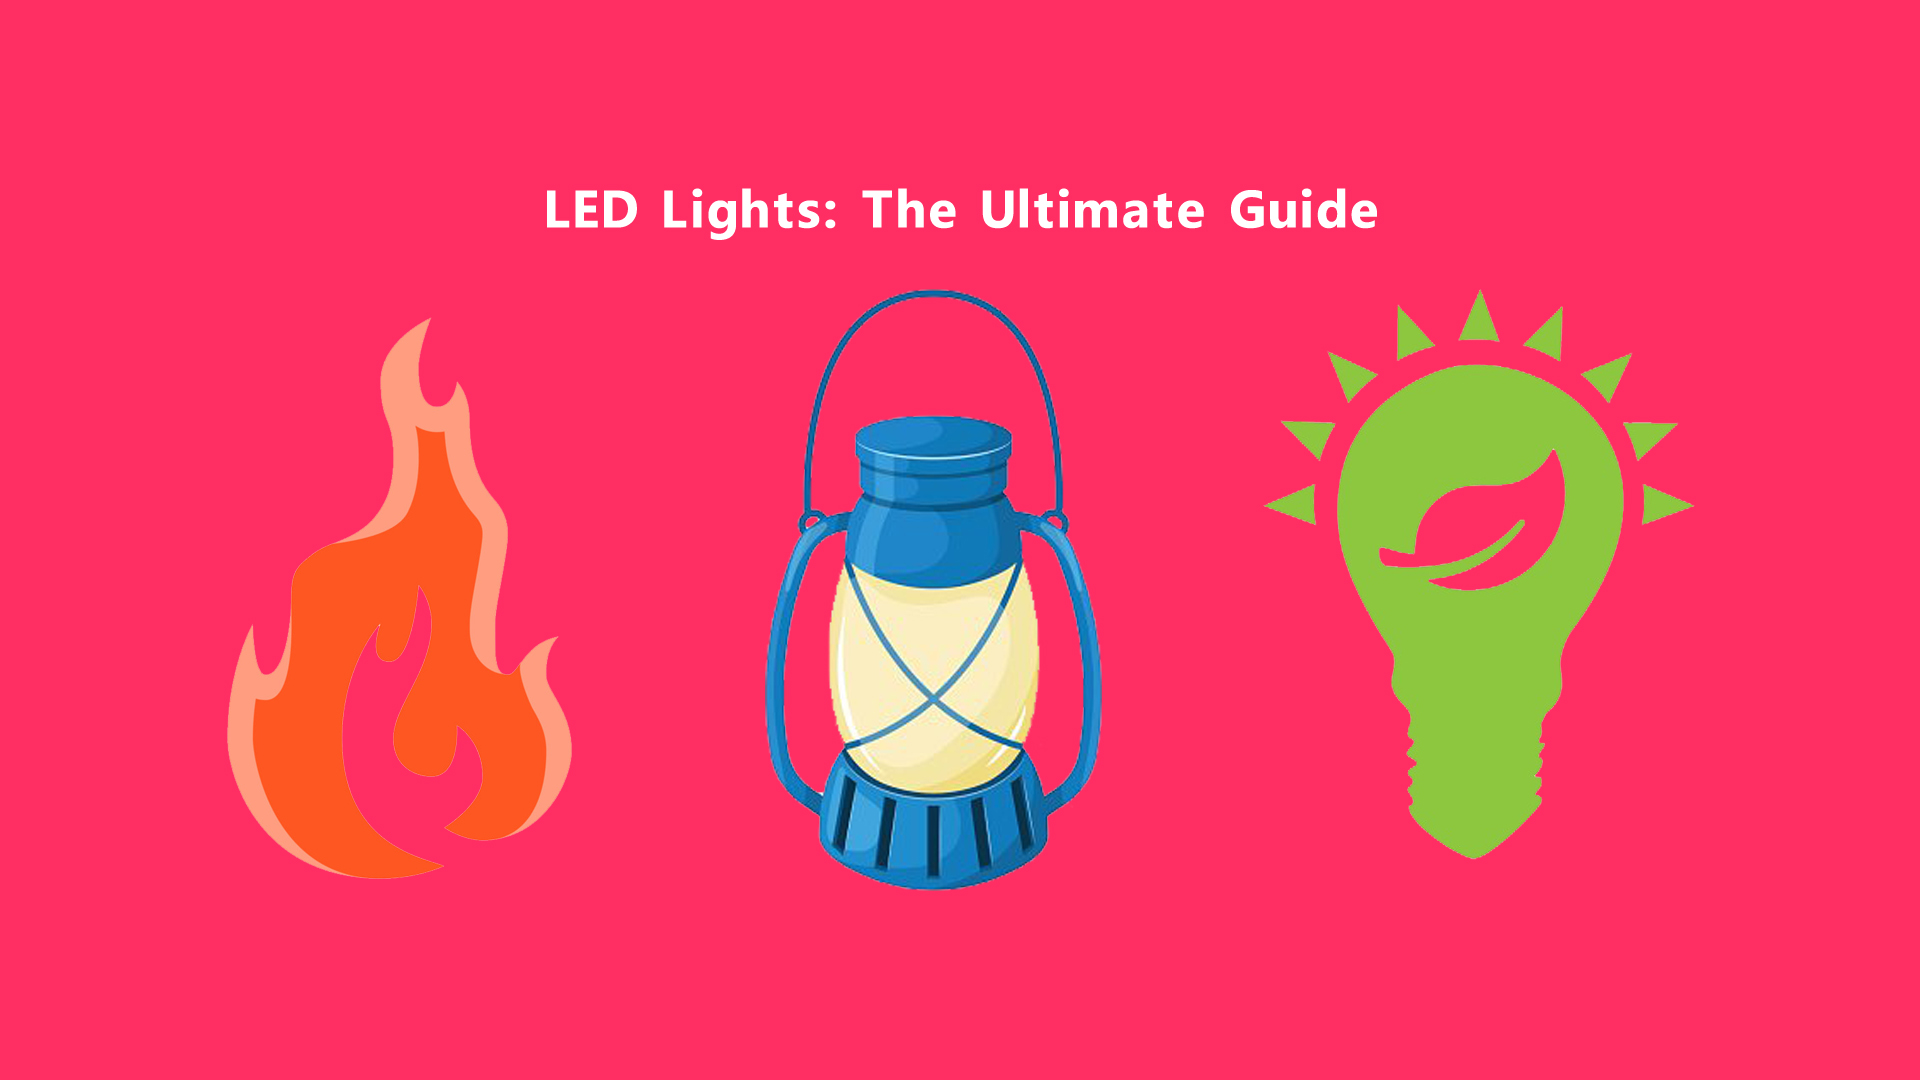 LED Lights The Ultimate Guide